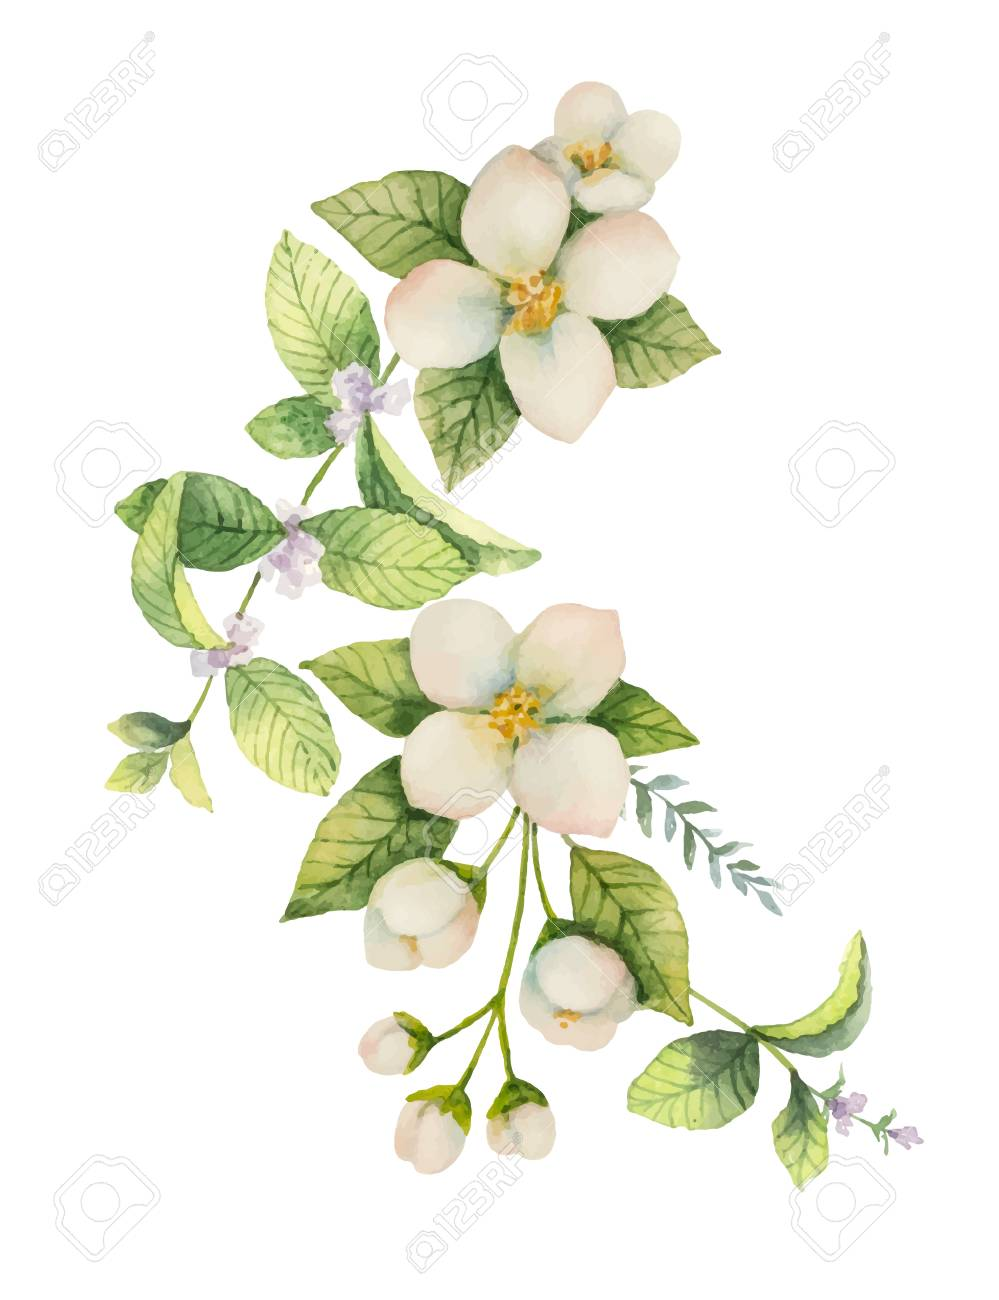 Watercolor vector wreath Jasmine and mint isolated on a white background. - 90368192